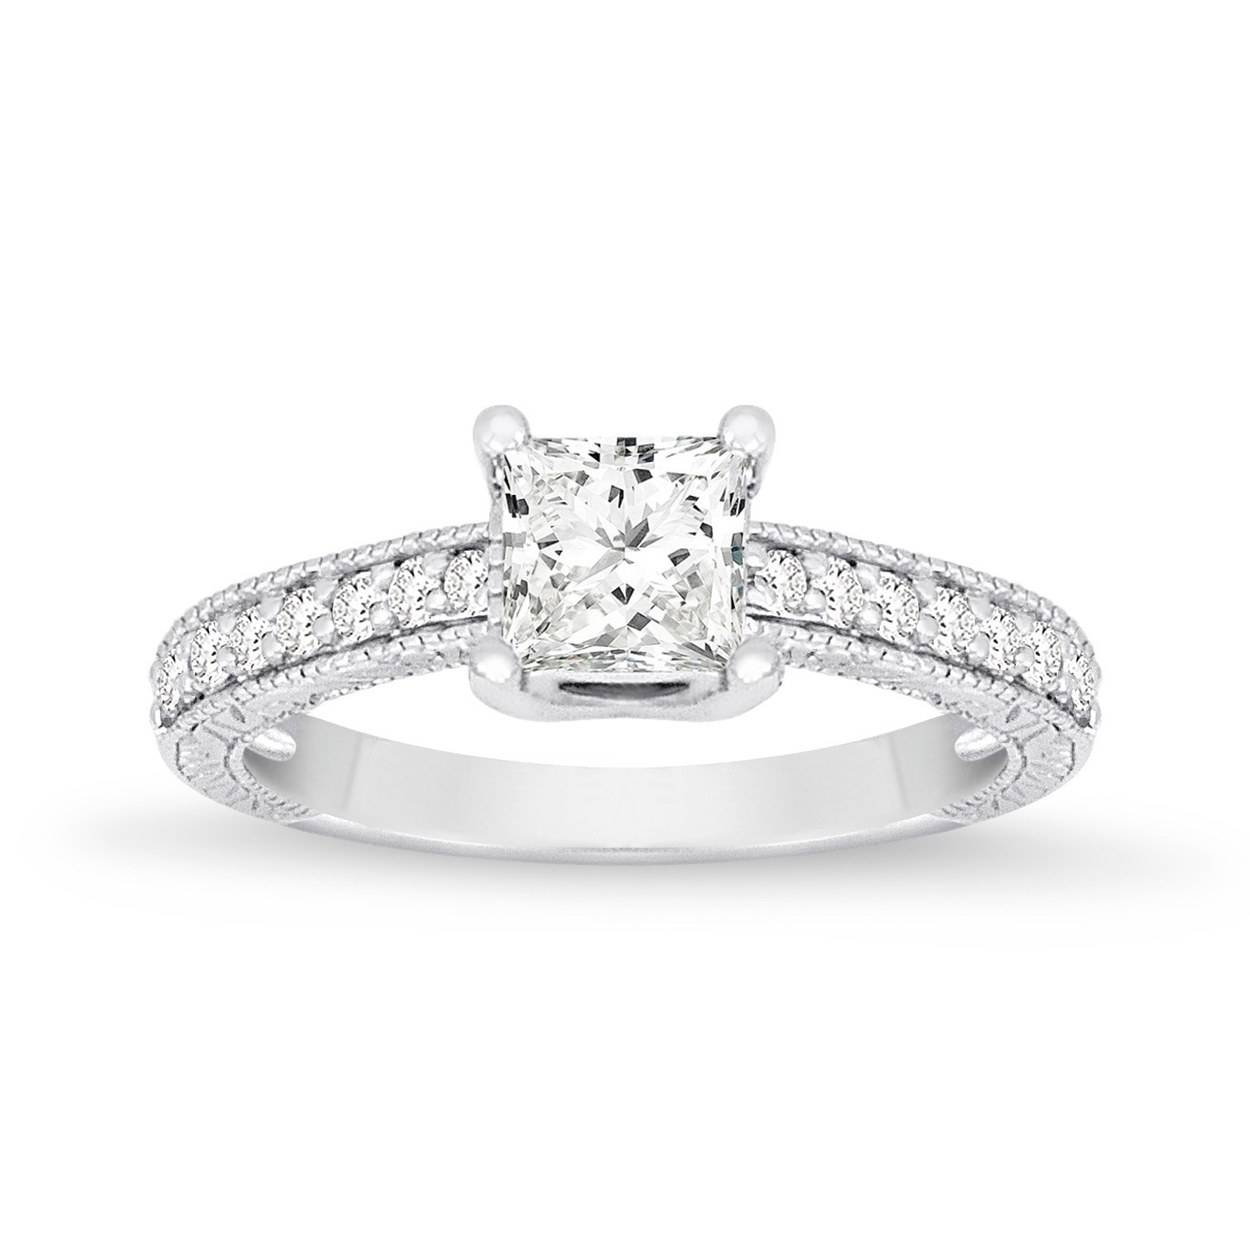 62 Diamond Engagement Rings Under $5,000 | Glamour Inside Emerald Cut Engagement Rings Under (View 8 of 15)